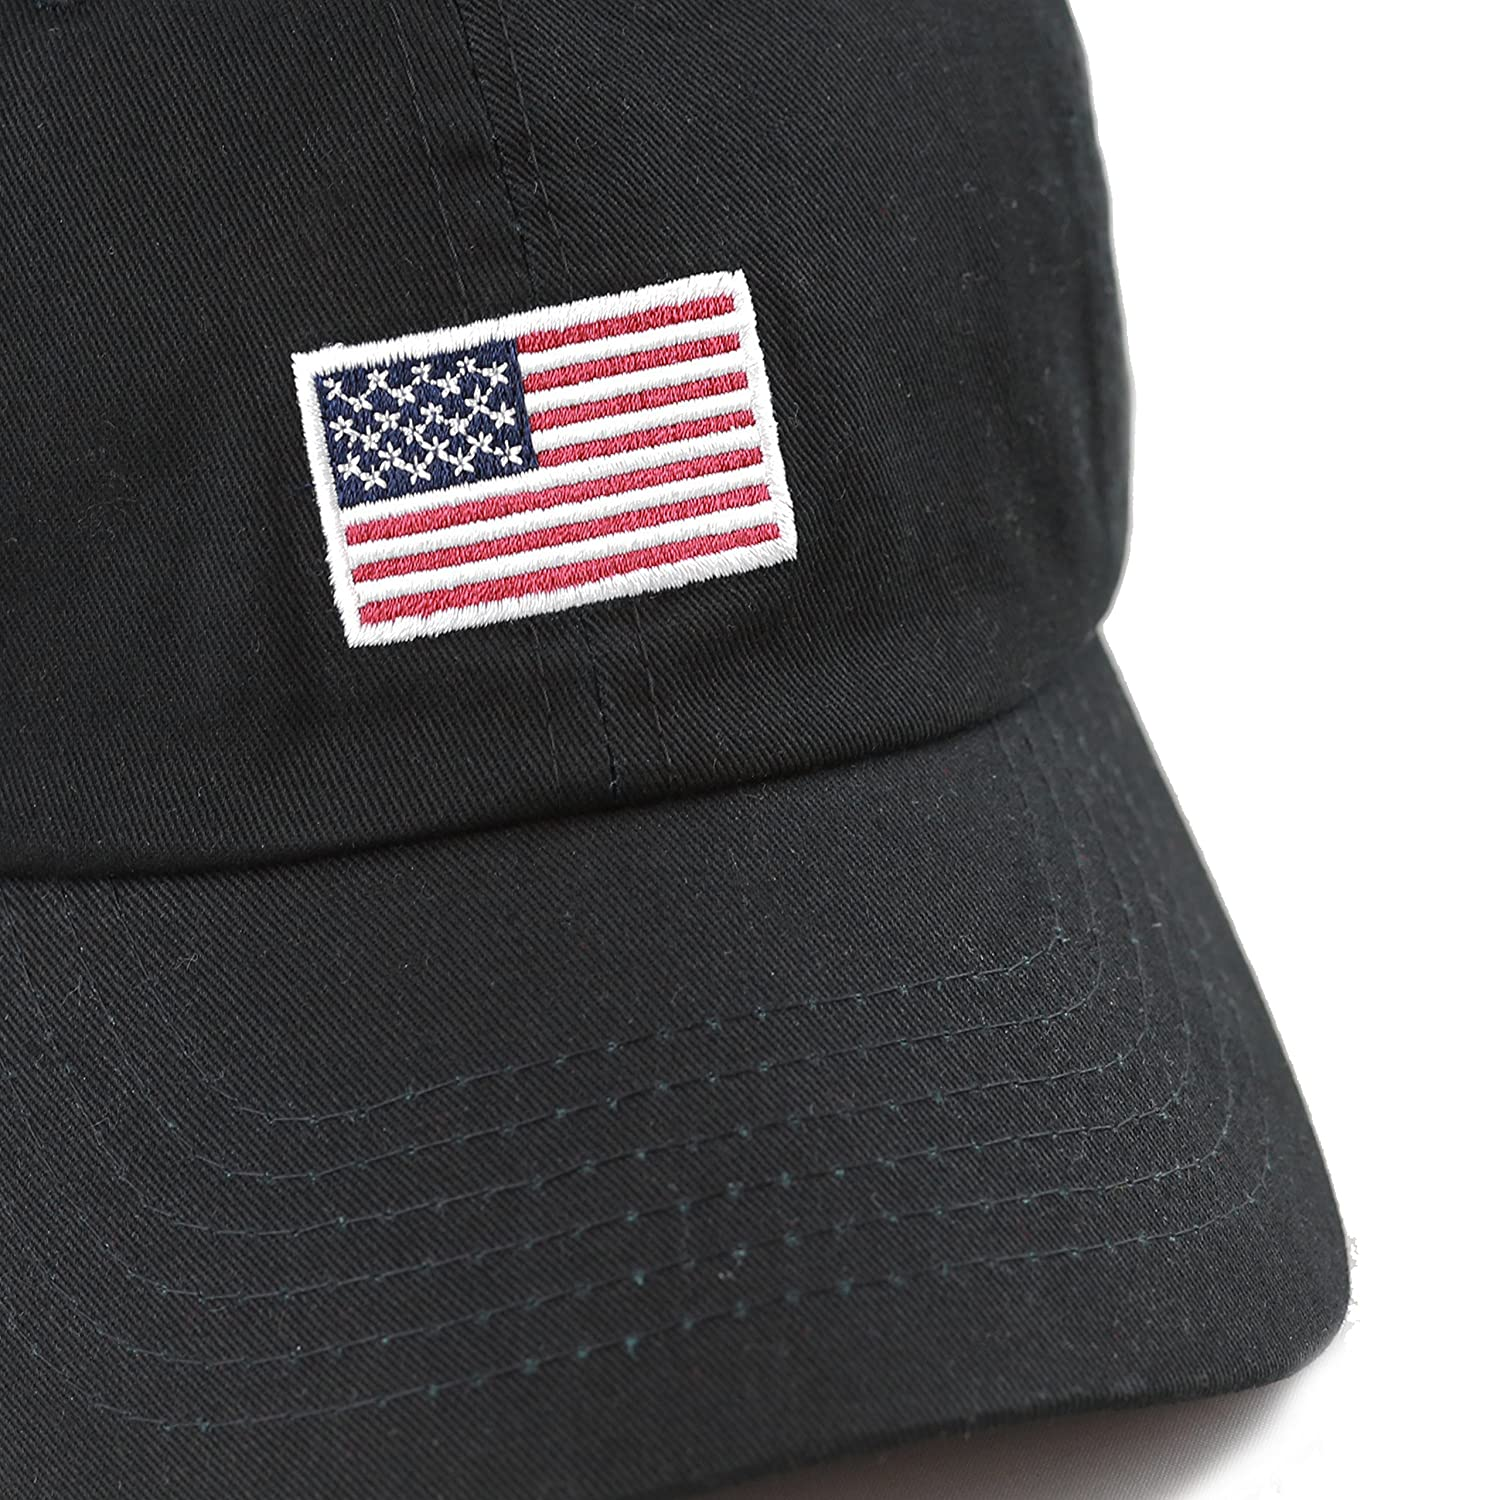 ea11acd1164 THE HAT DEPOT 300n1405 USA Embroidery Cotton Cap (Flag-Black) at Amazon  Women s Clothing store